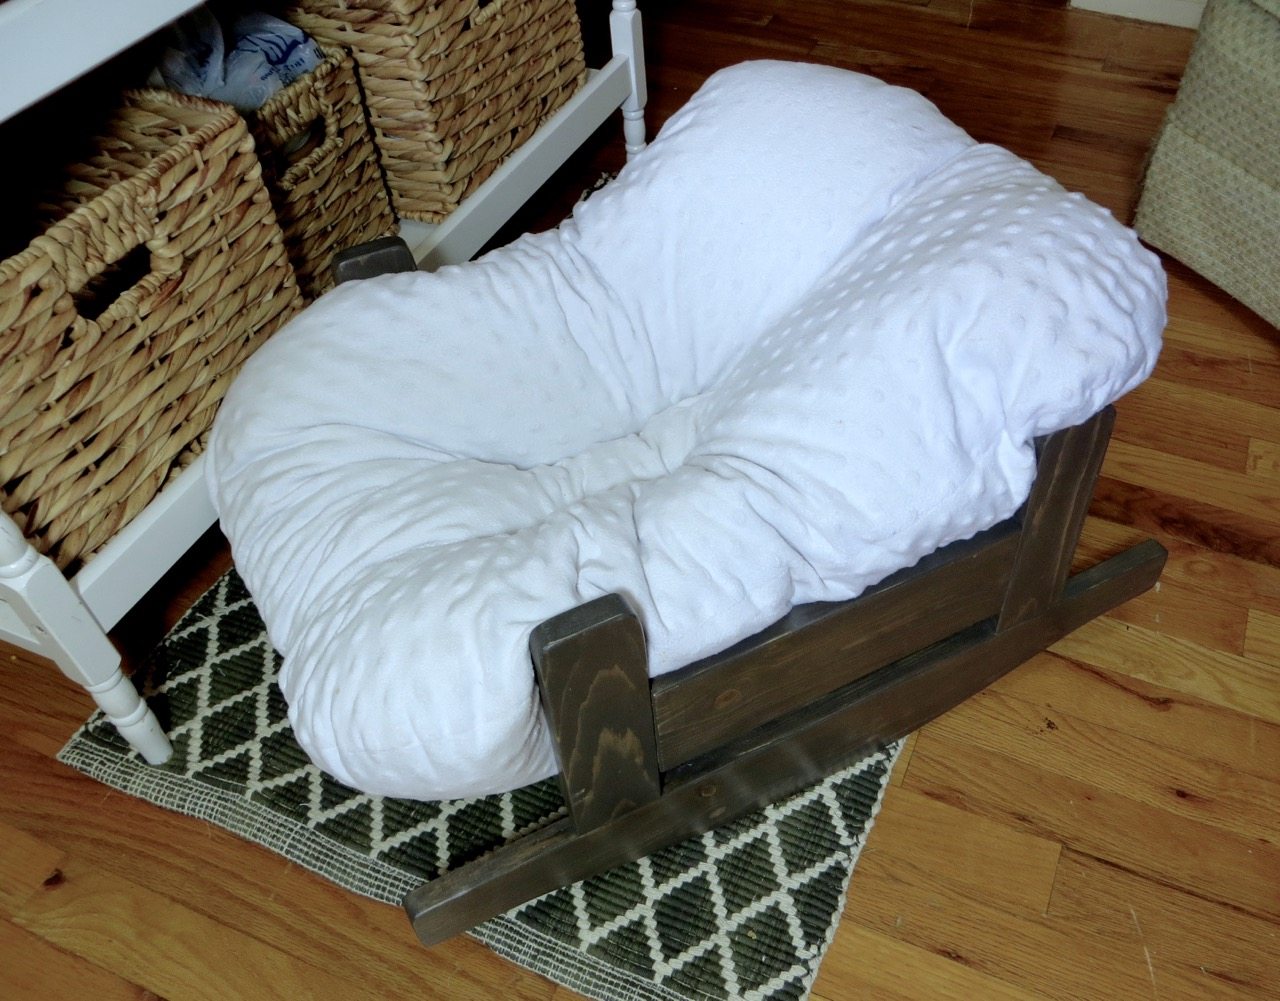 DIY Wooden Baby Pillow Rocker Bassinet Lounger | The Project Lady